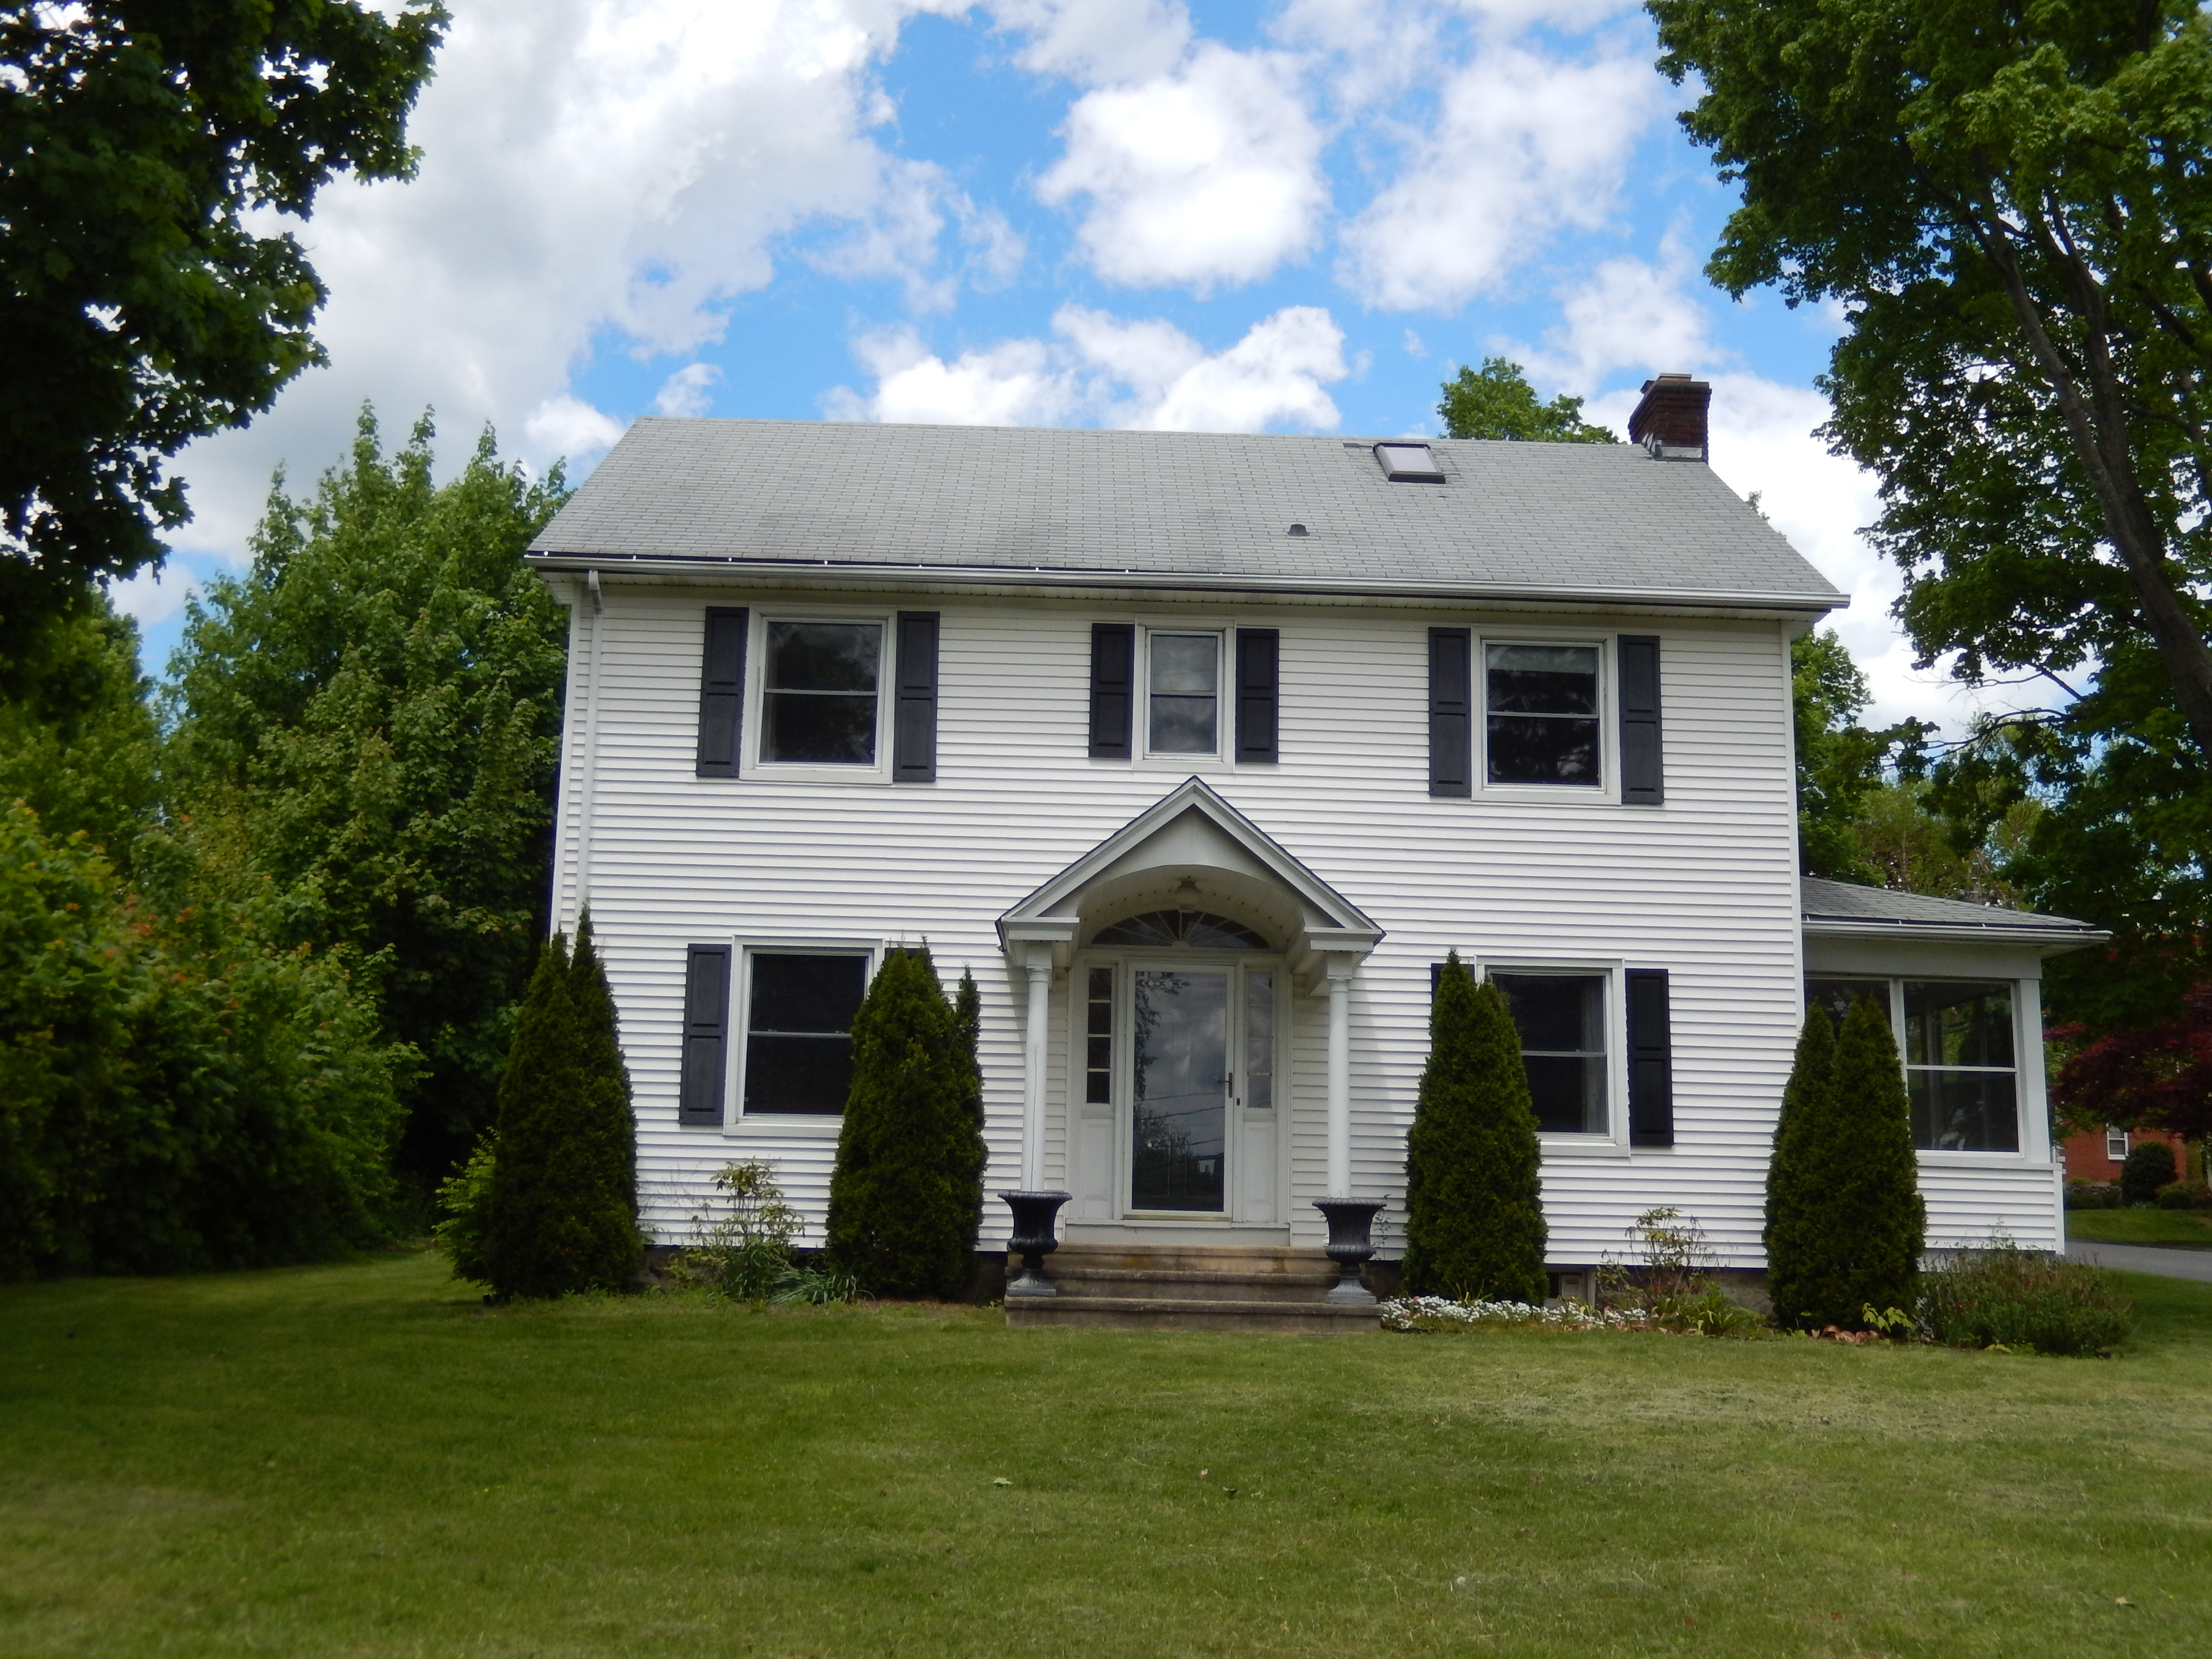 Single Family Home for Sale at Antique Colonial 2 Lawncrest Road Danbury, Connecticut, 06810 United States